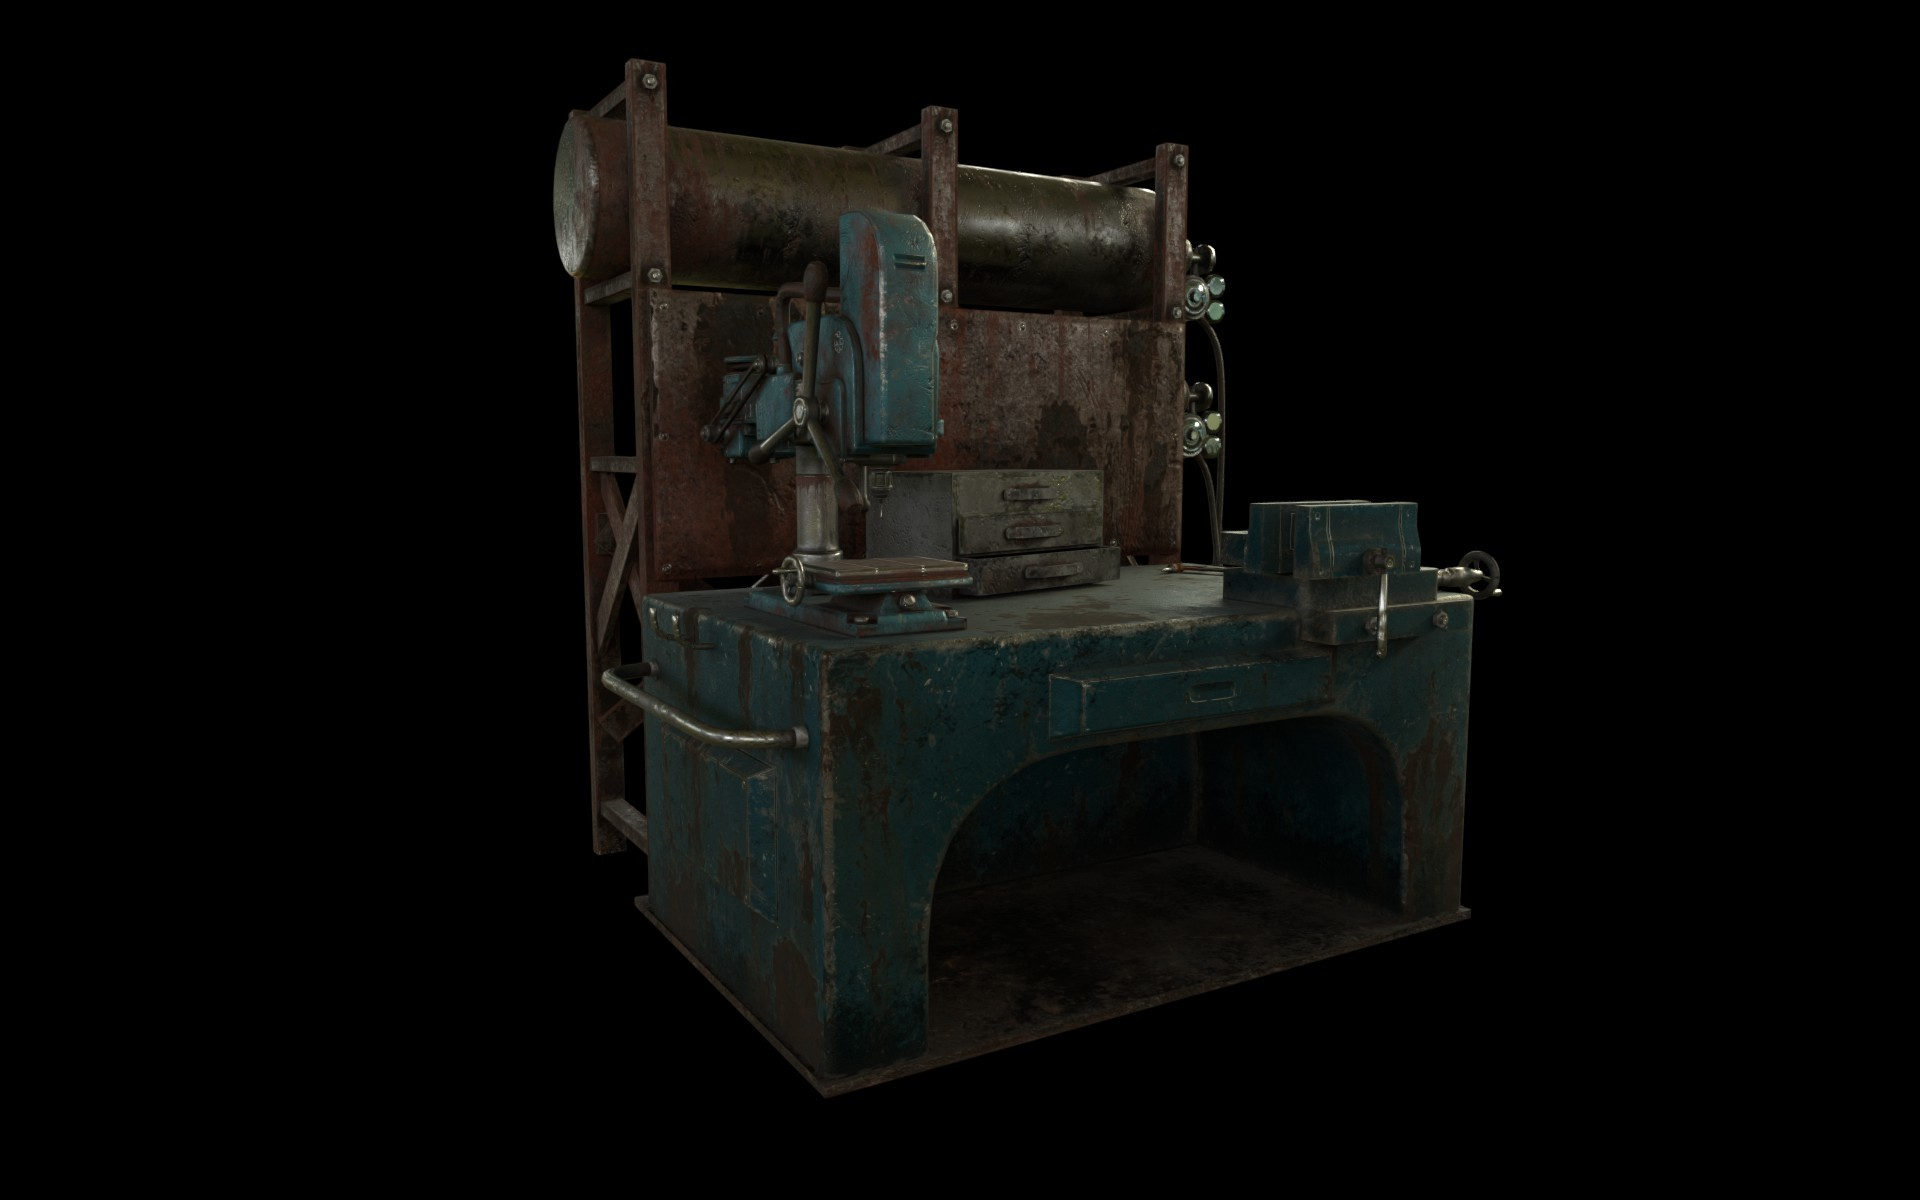 Pleasing Artstation Fallout 4 Weapons Workbench Rickey Barnes Caraccident5 Cool Chair Designs And Ideas Caraccident5Info